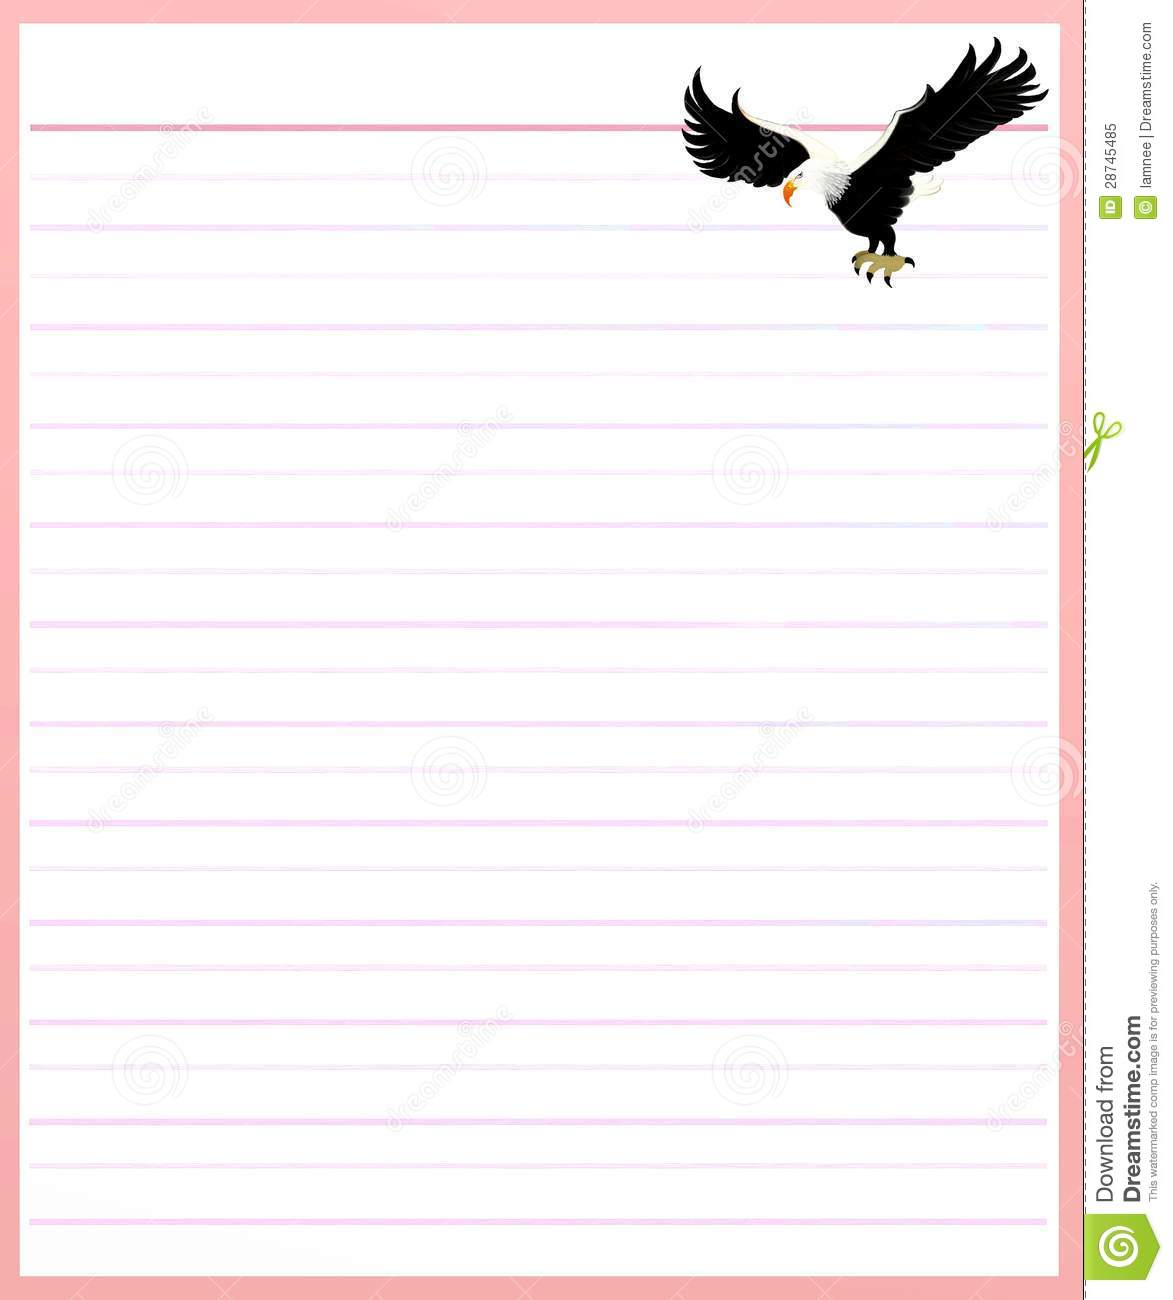 eagle on pink color lined paper royalty free stock photo image